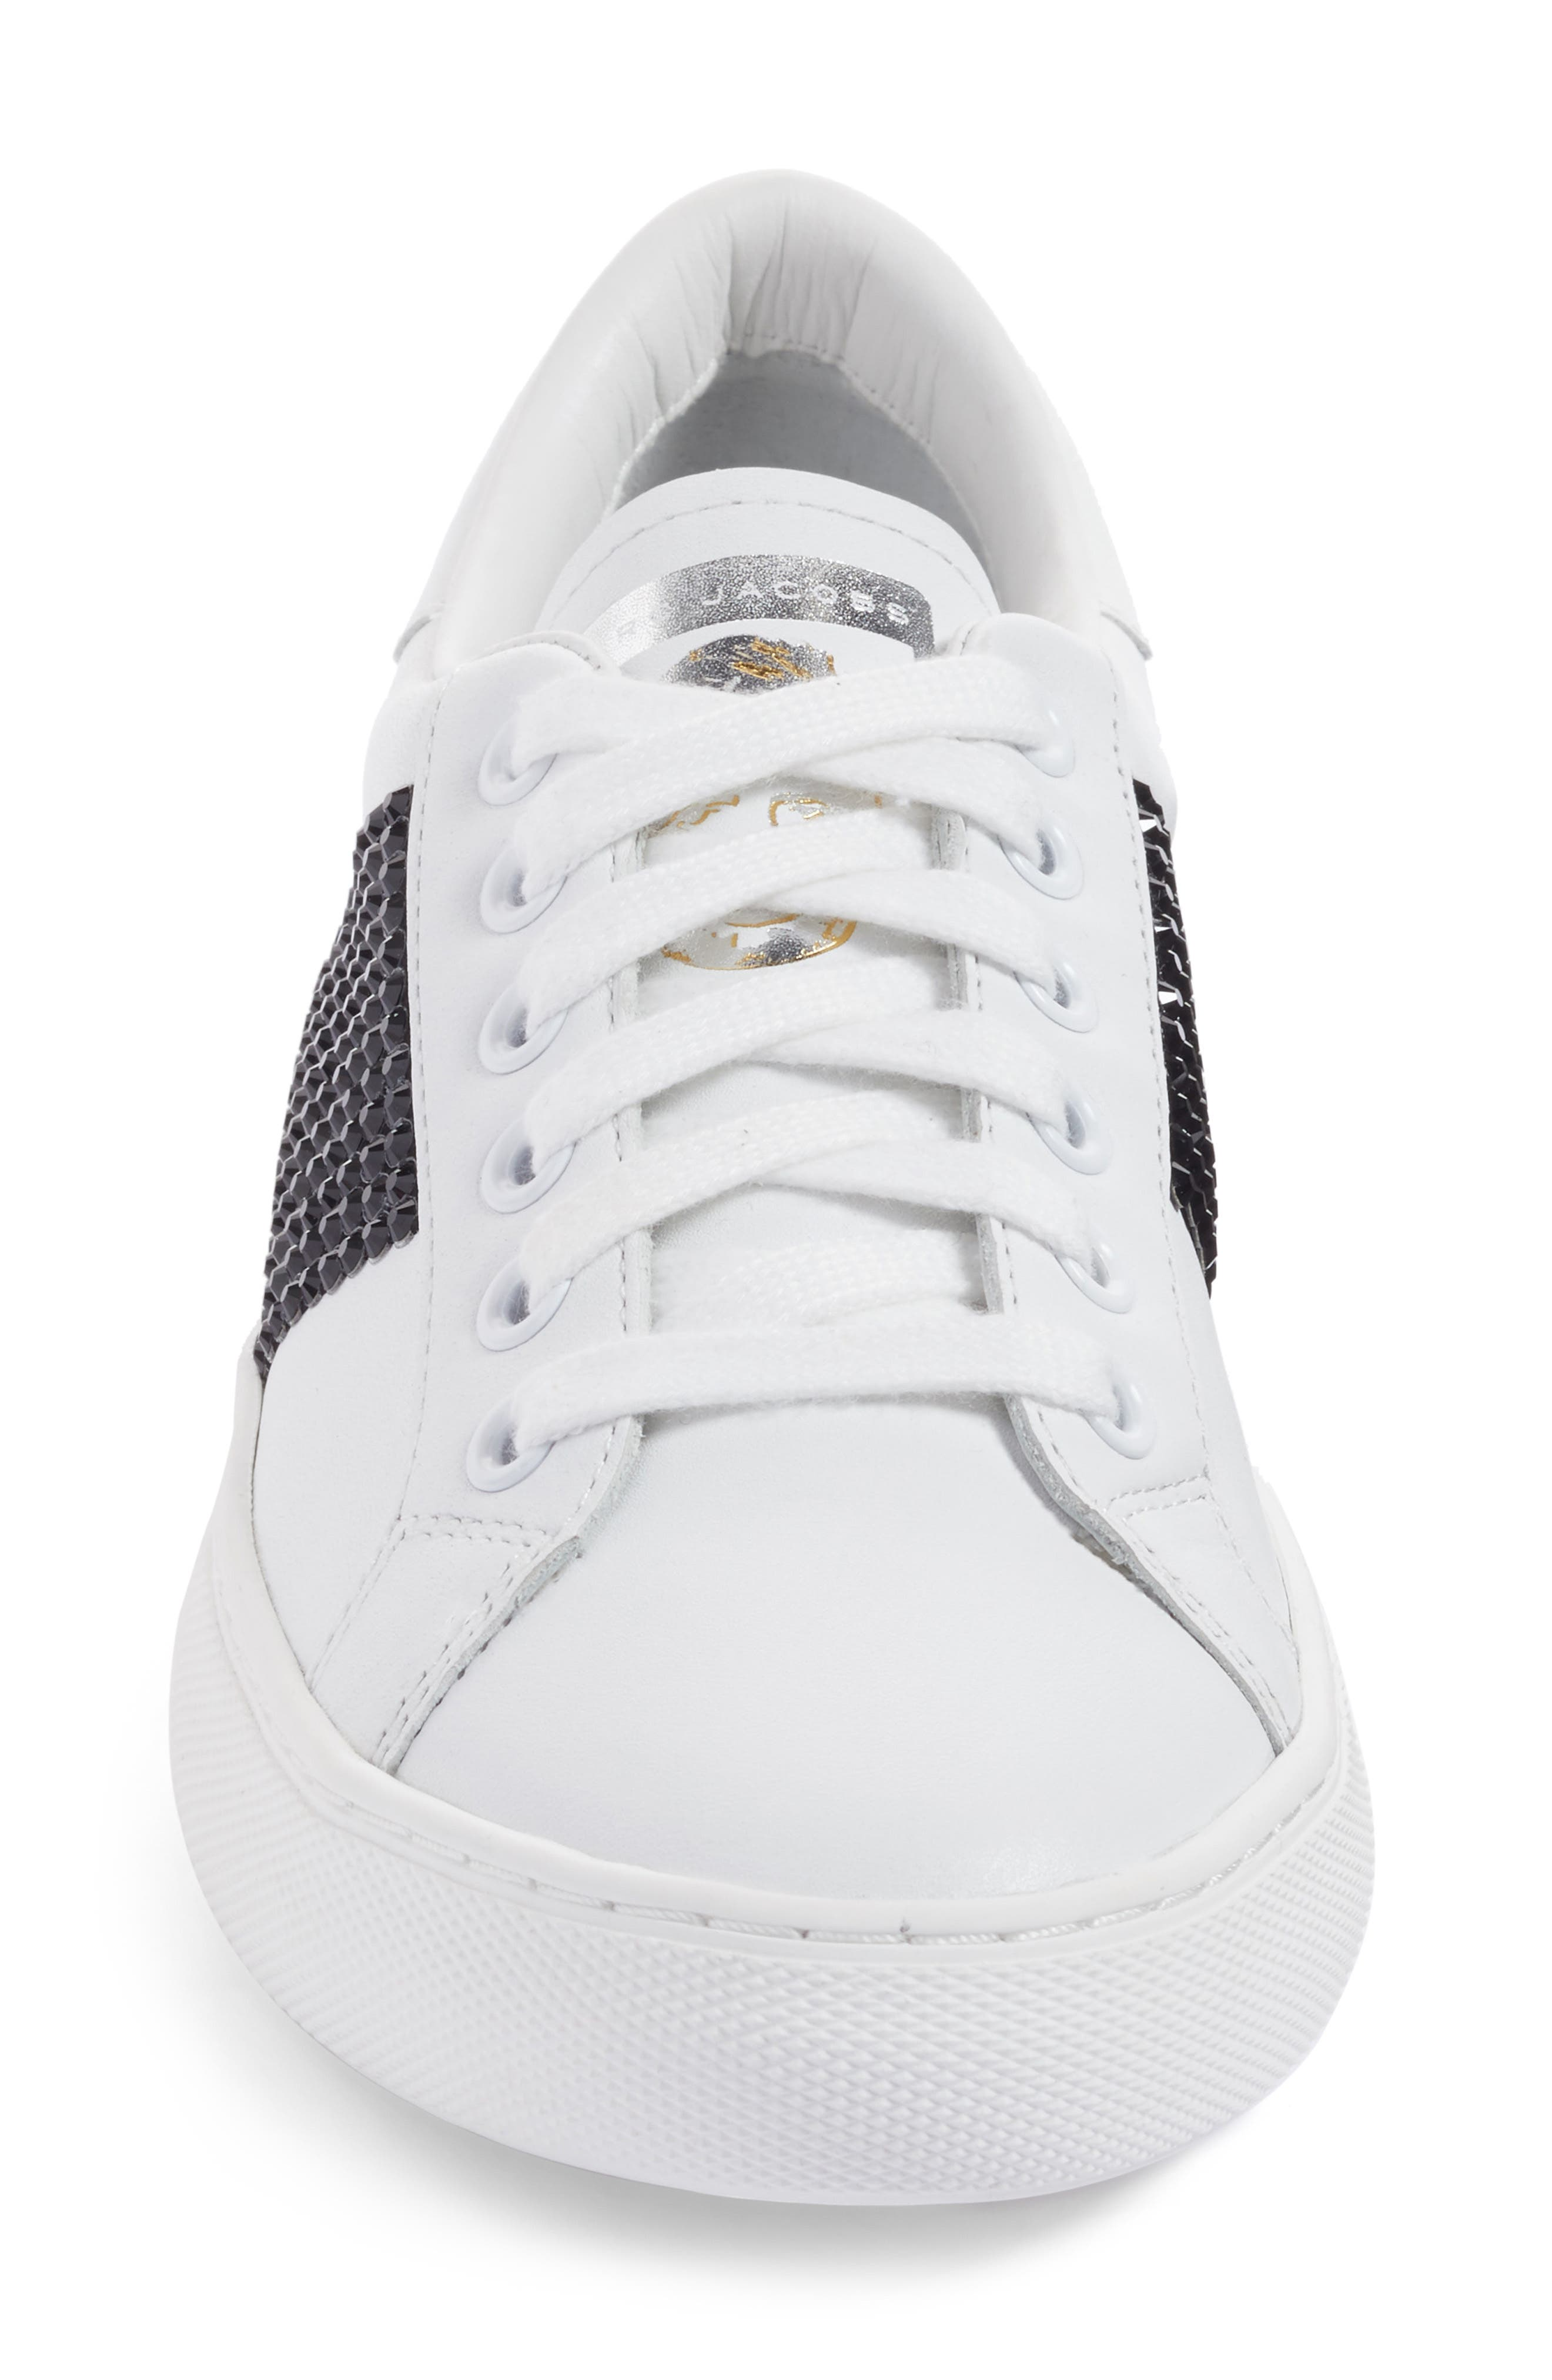 Empire Embellished Sneaker,                             Alternate thumbnail 4, color,                             160